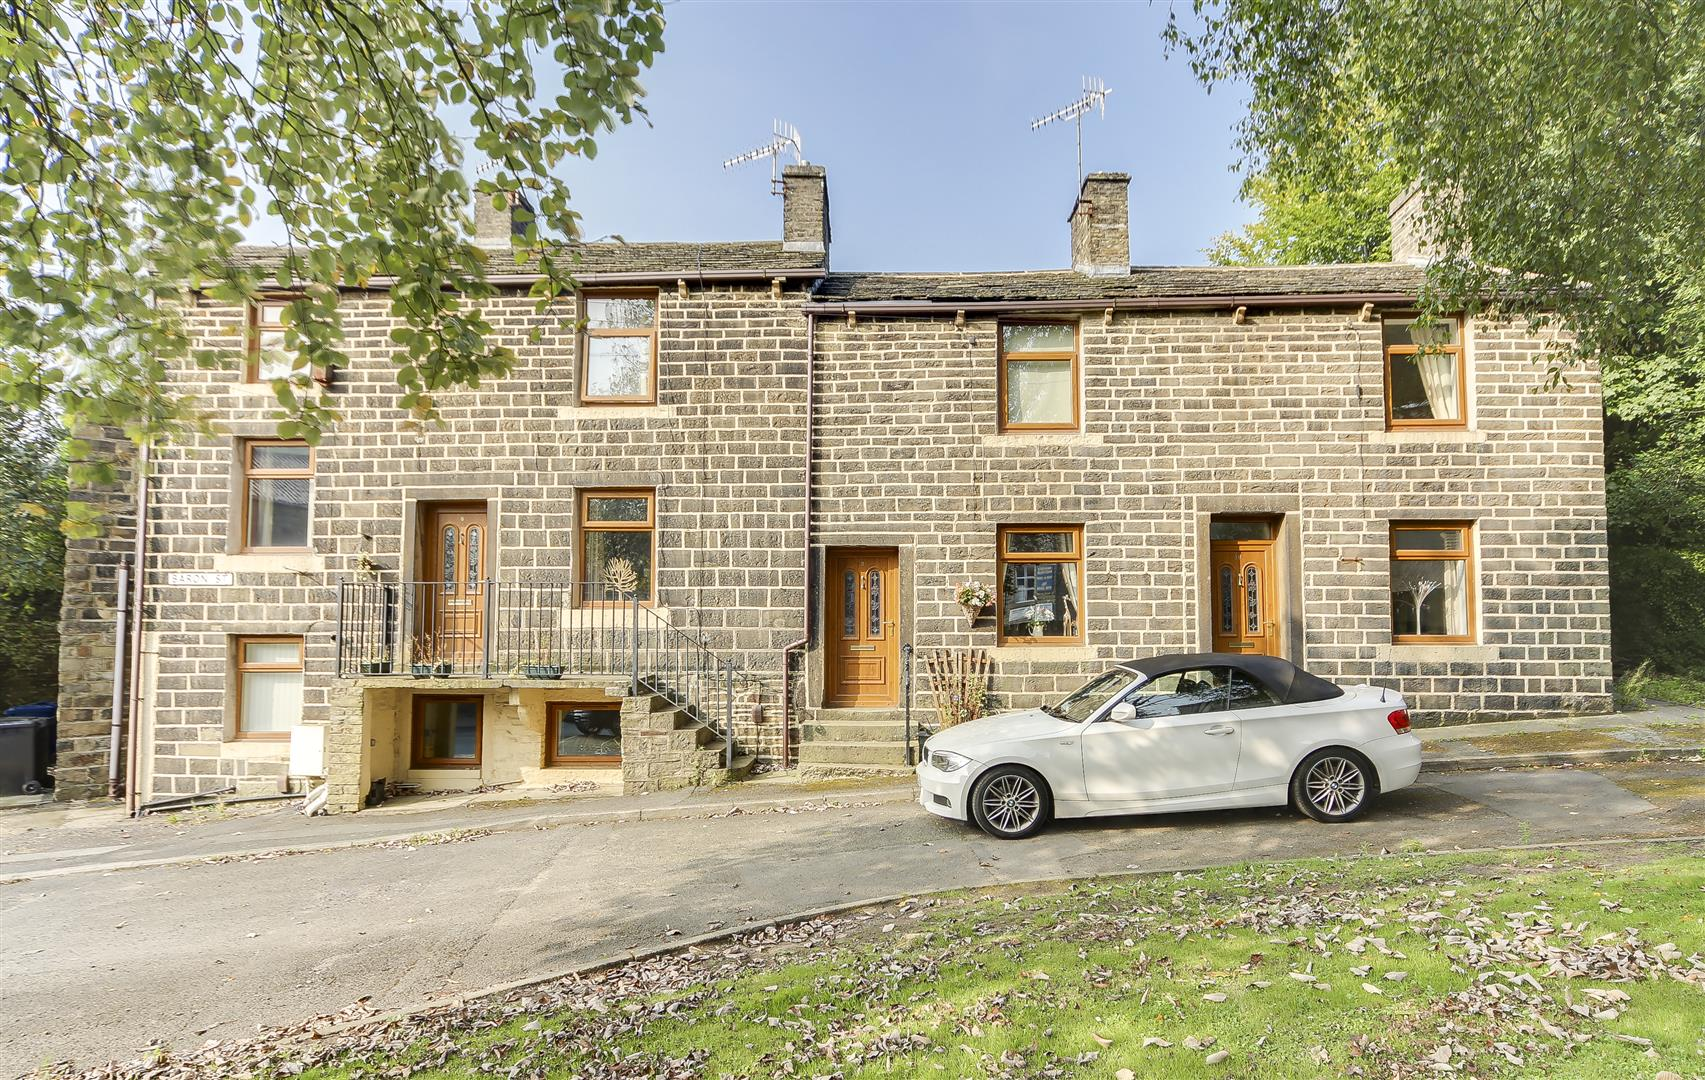 Property for sale in Baron Street, Rawtenstall, Rossendale